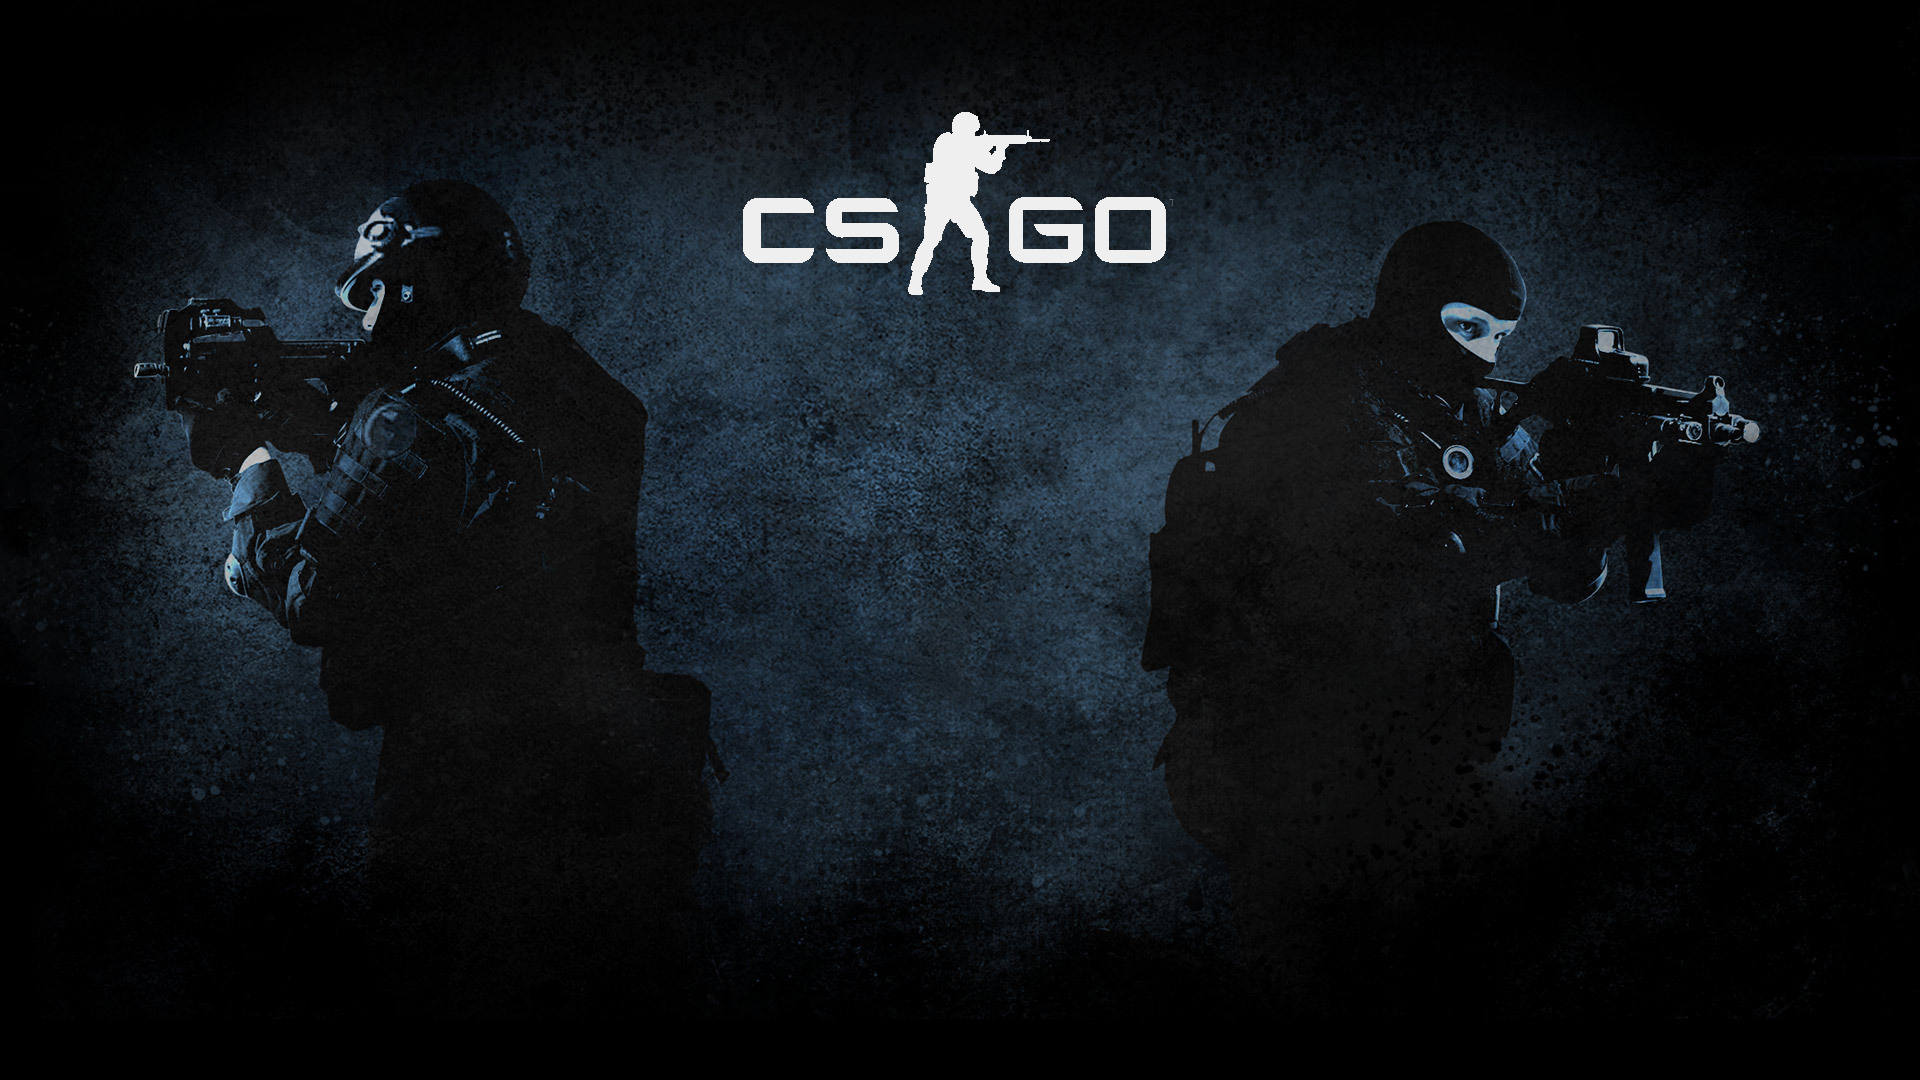 Dragon Wallpaper Hd For Pc Counter Strike Global Offensive Wallpapers Pictures Images